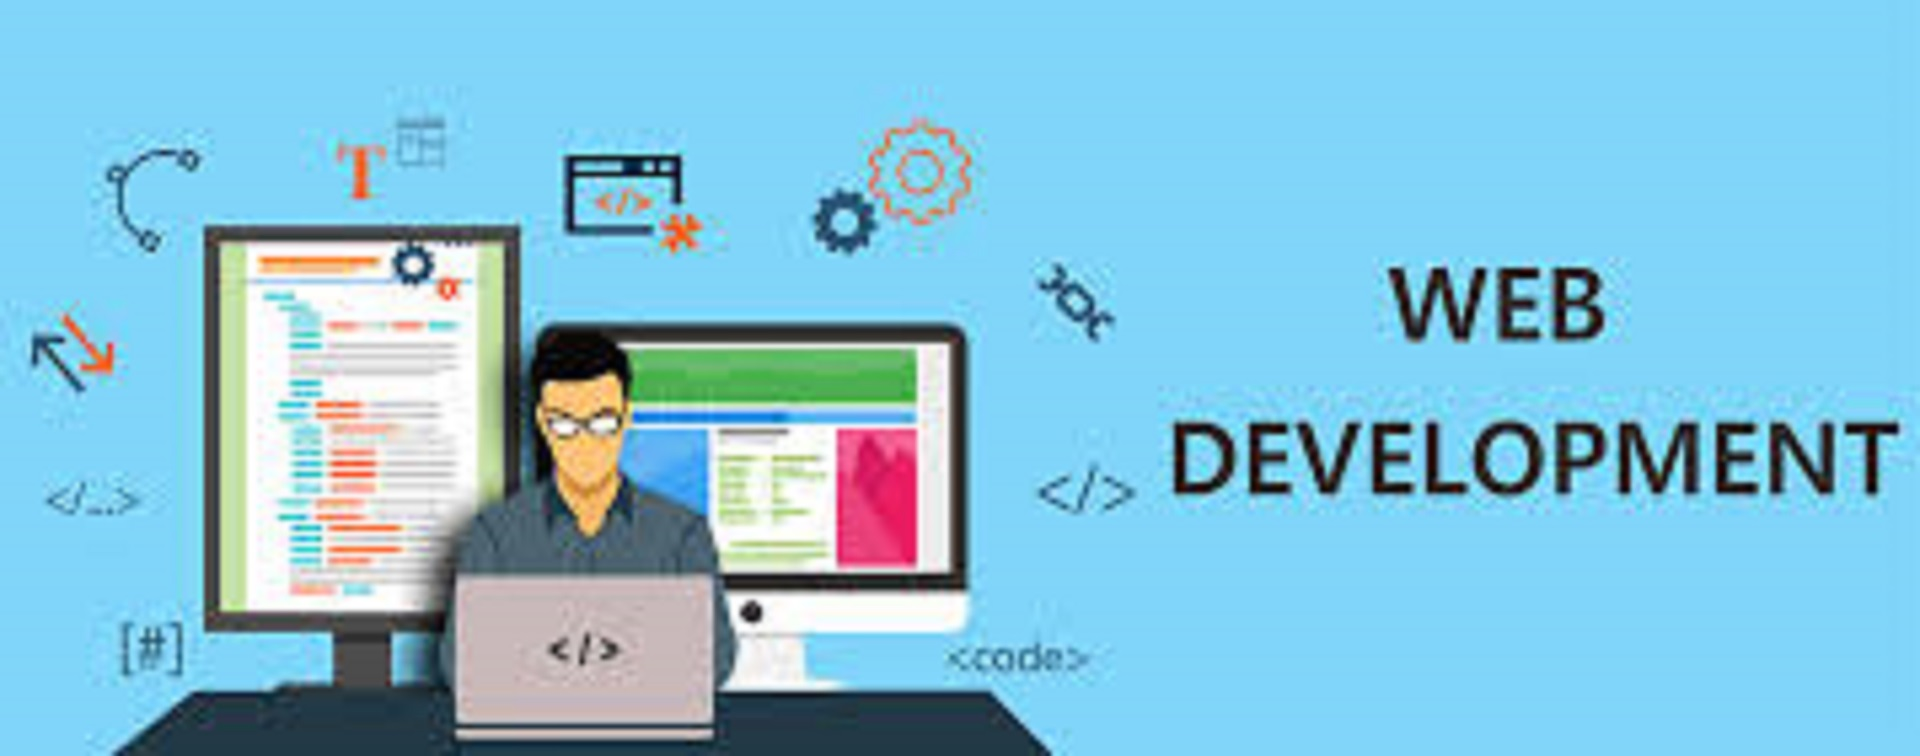 I'm Your Web Developer In Php,Codeigniter,Database,Wordpress